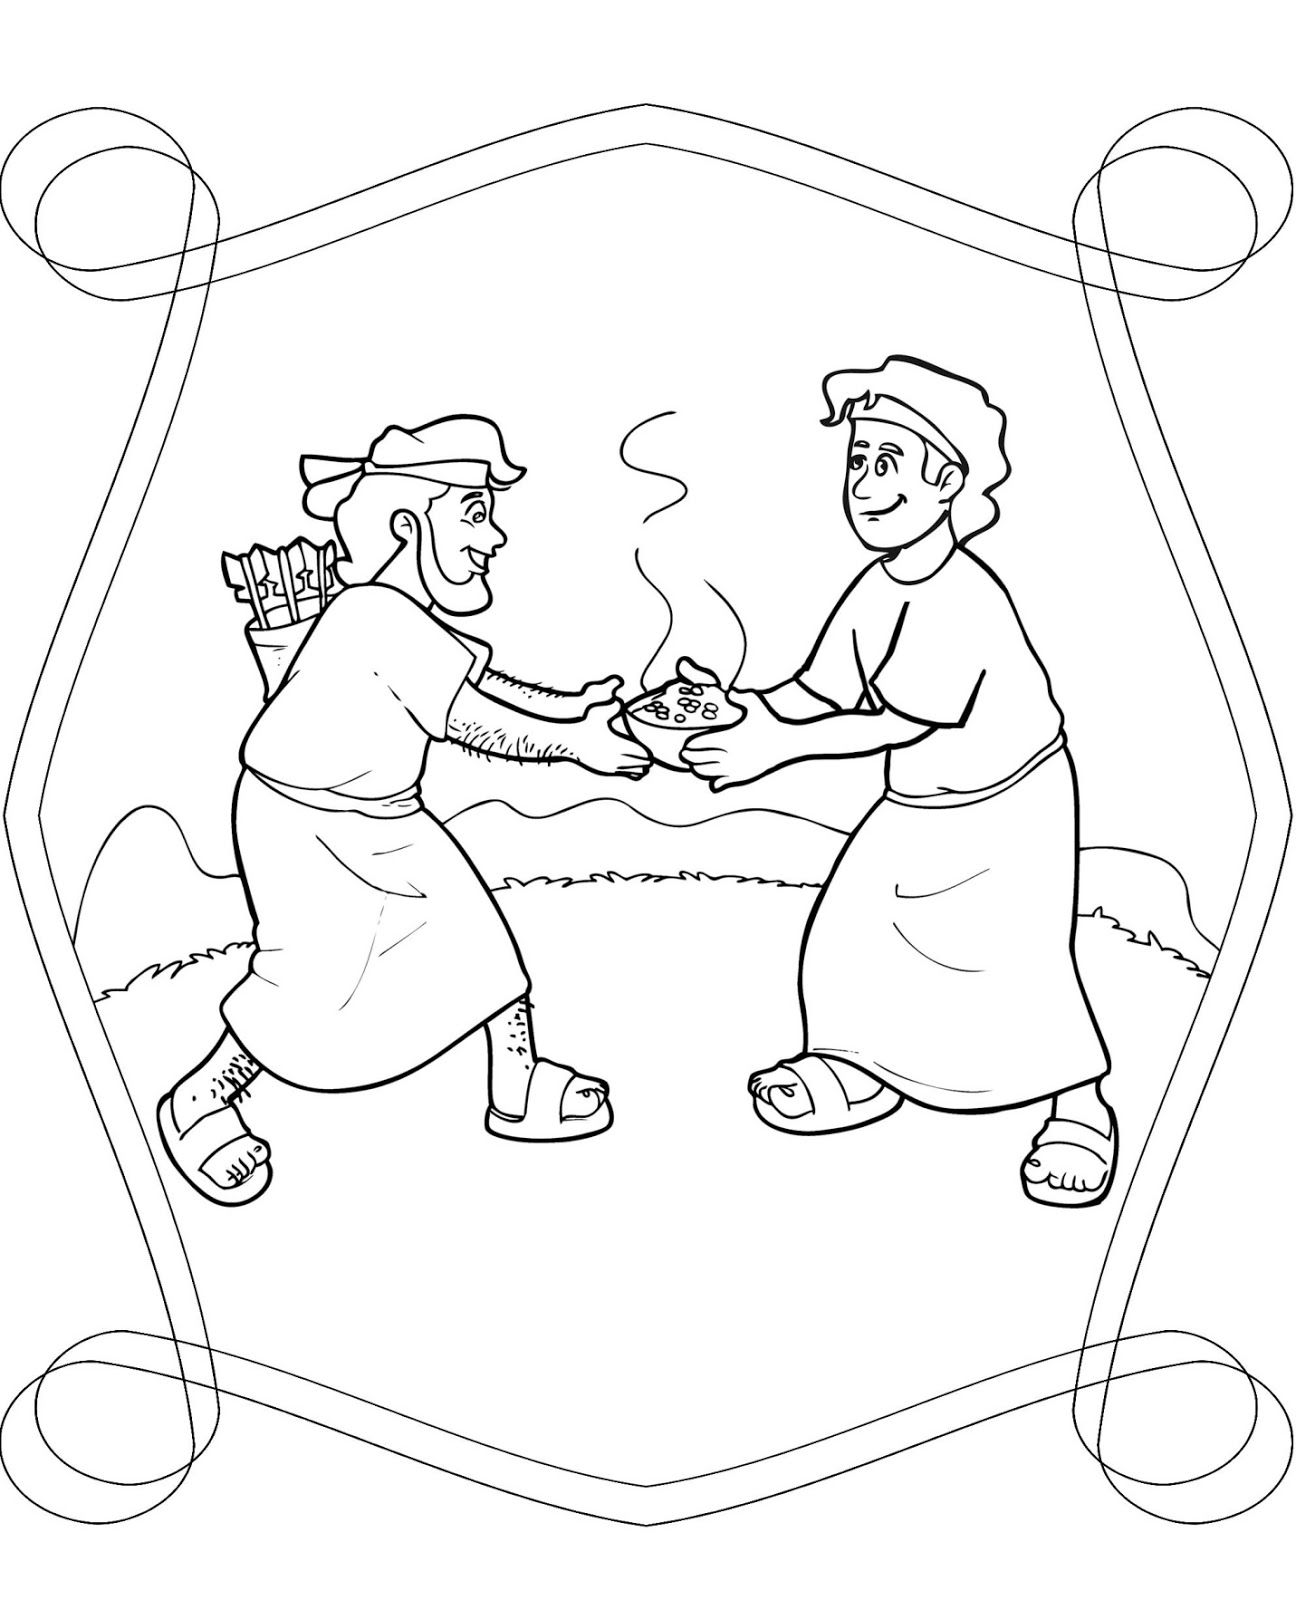 Giabobbe 28 Jpg 1296 1600 Bible Coloring Pages Bible Story